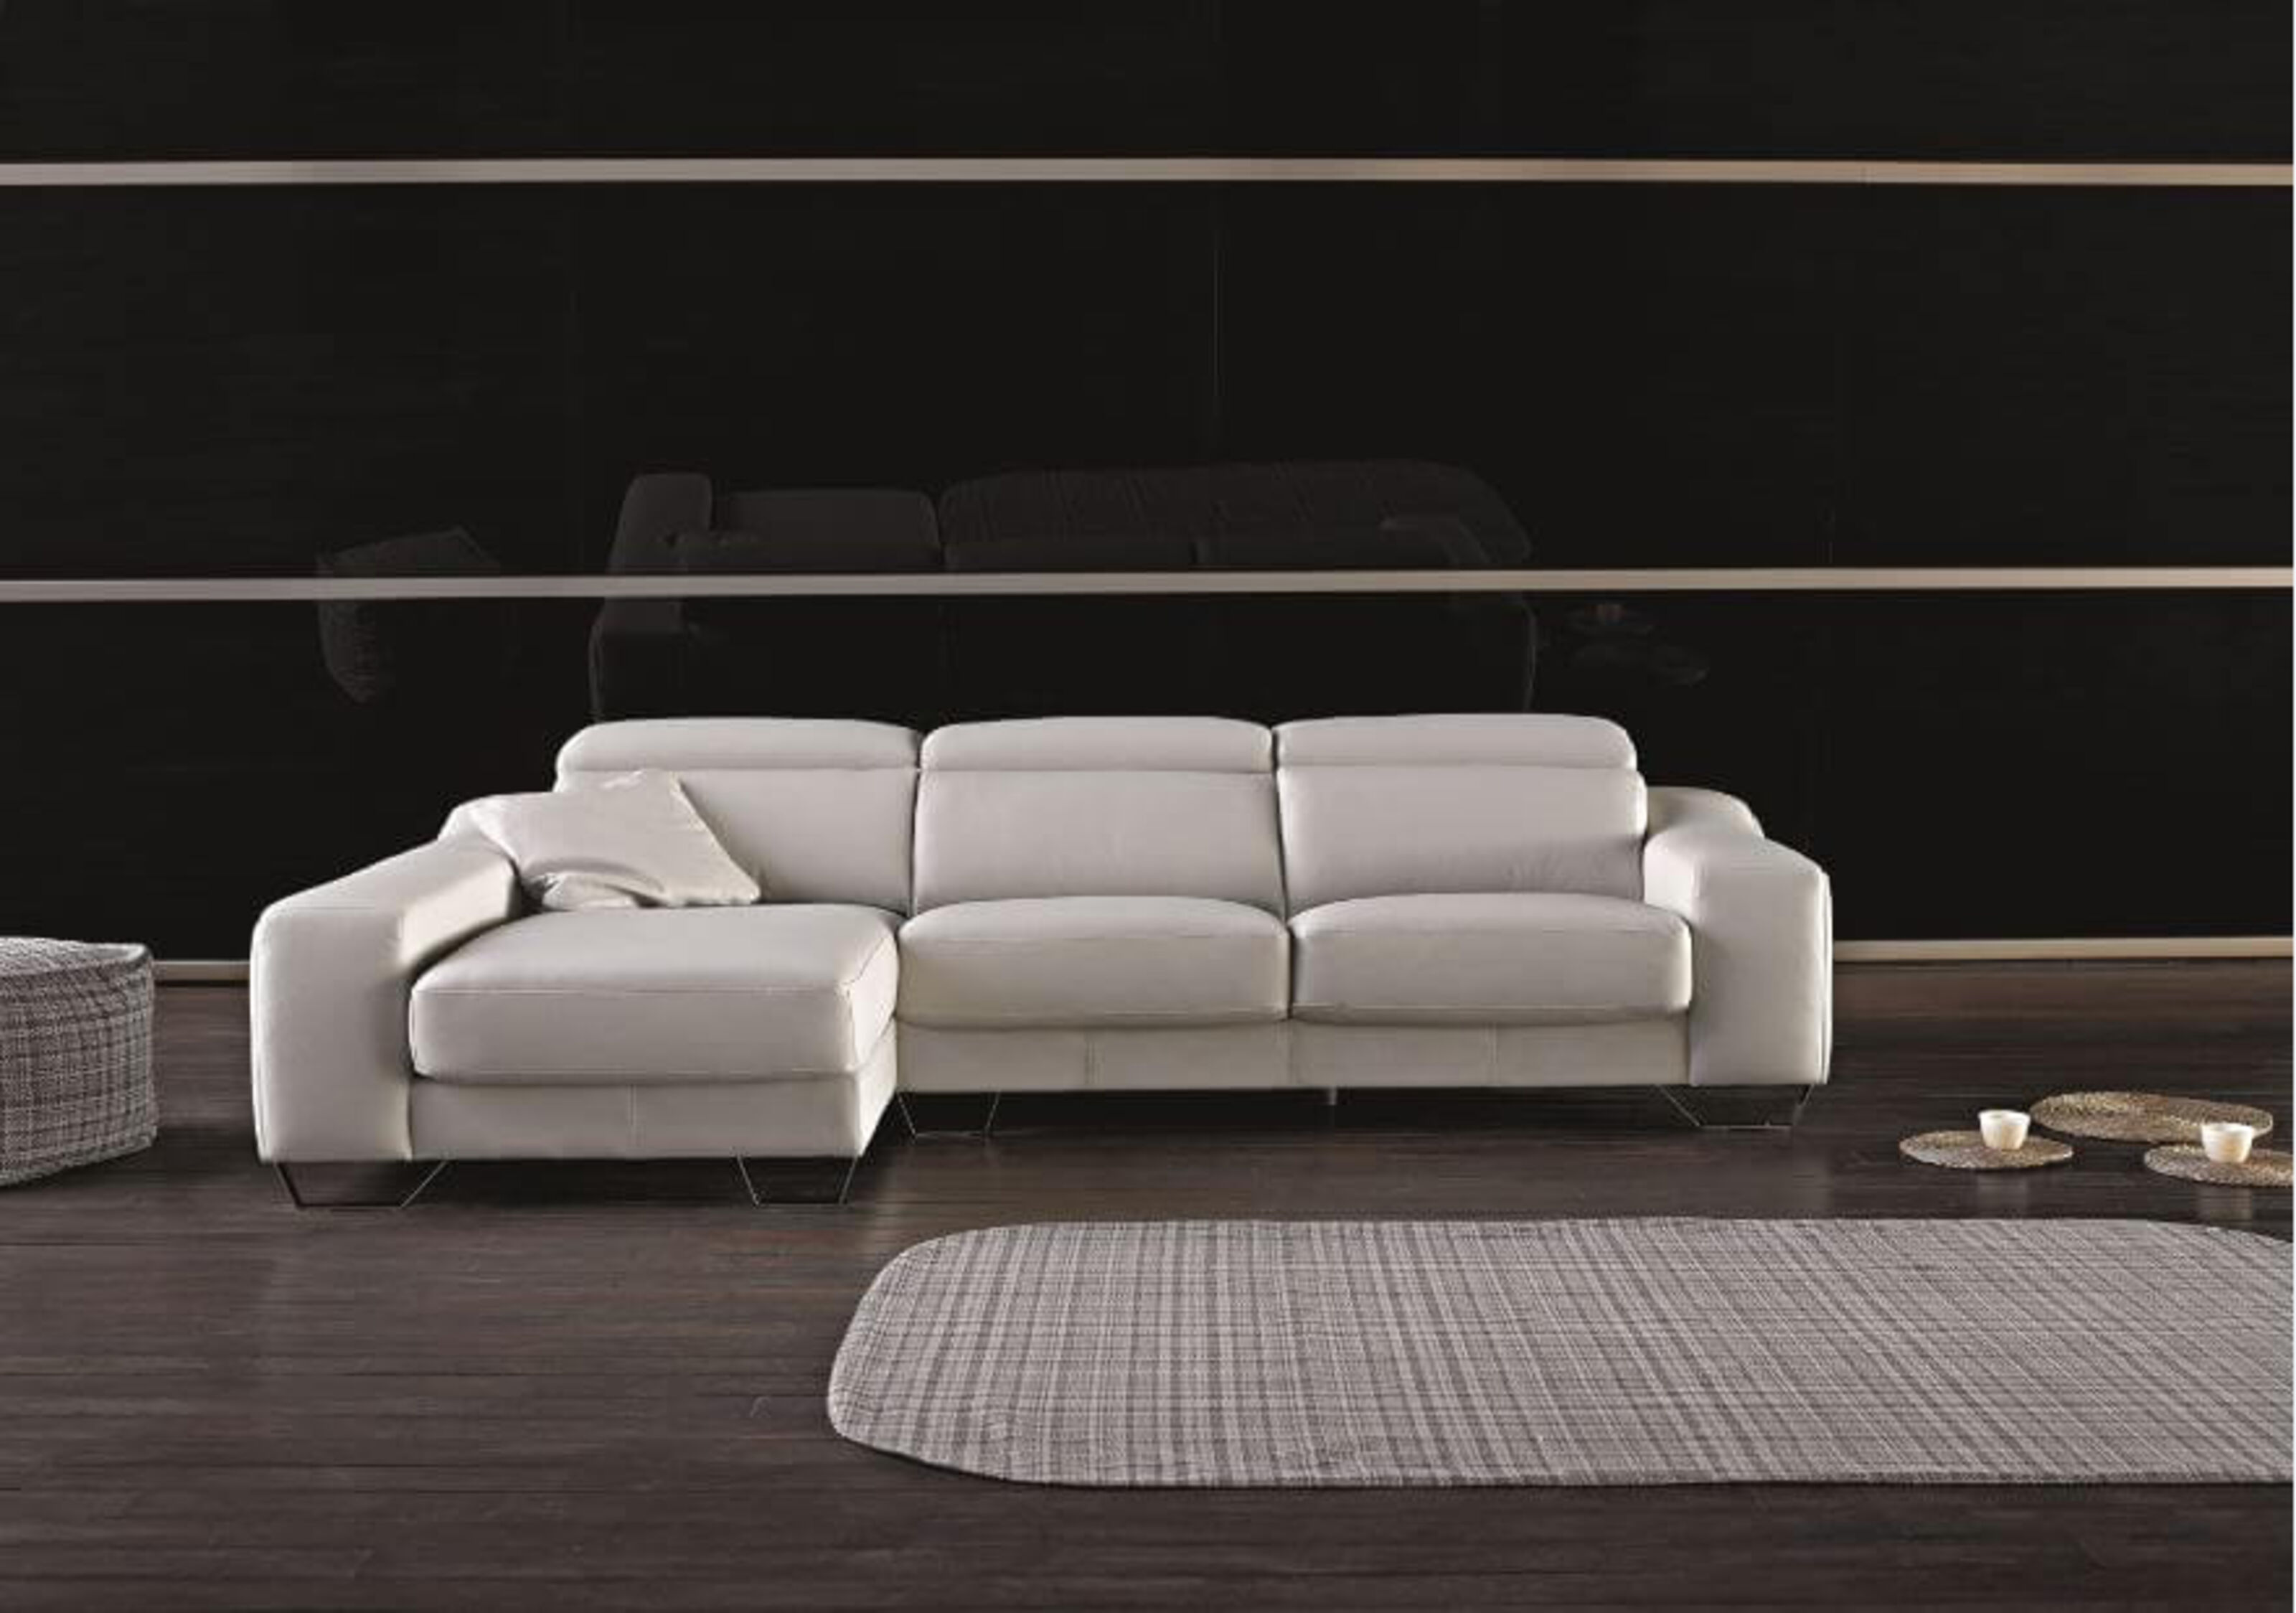 Cinthia Italian Reclining Leather Corner Group Sofa Blanco White